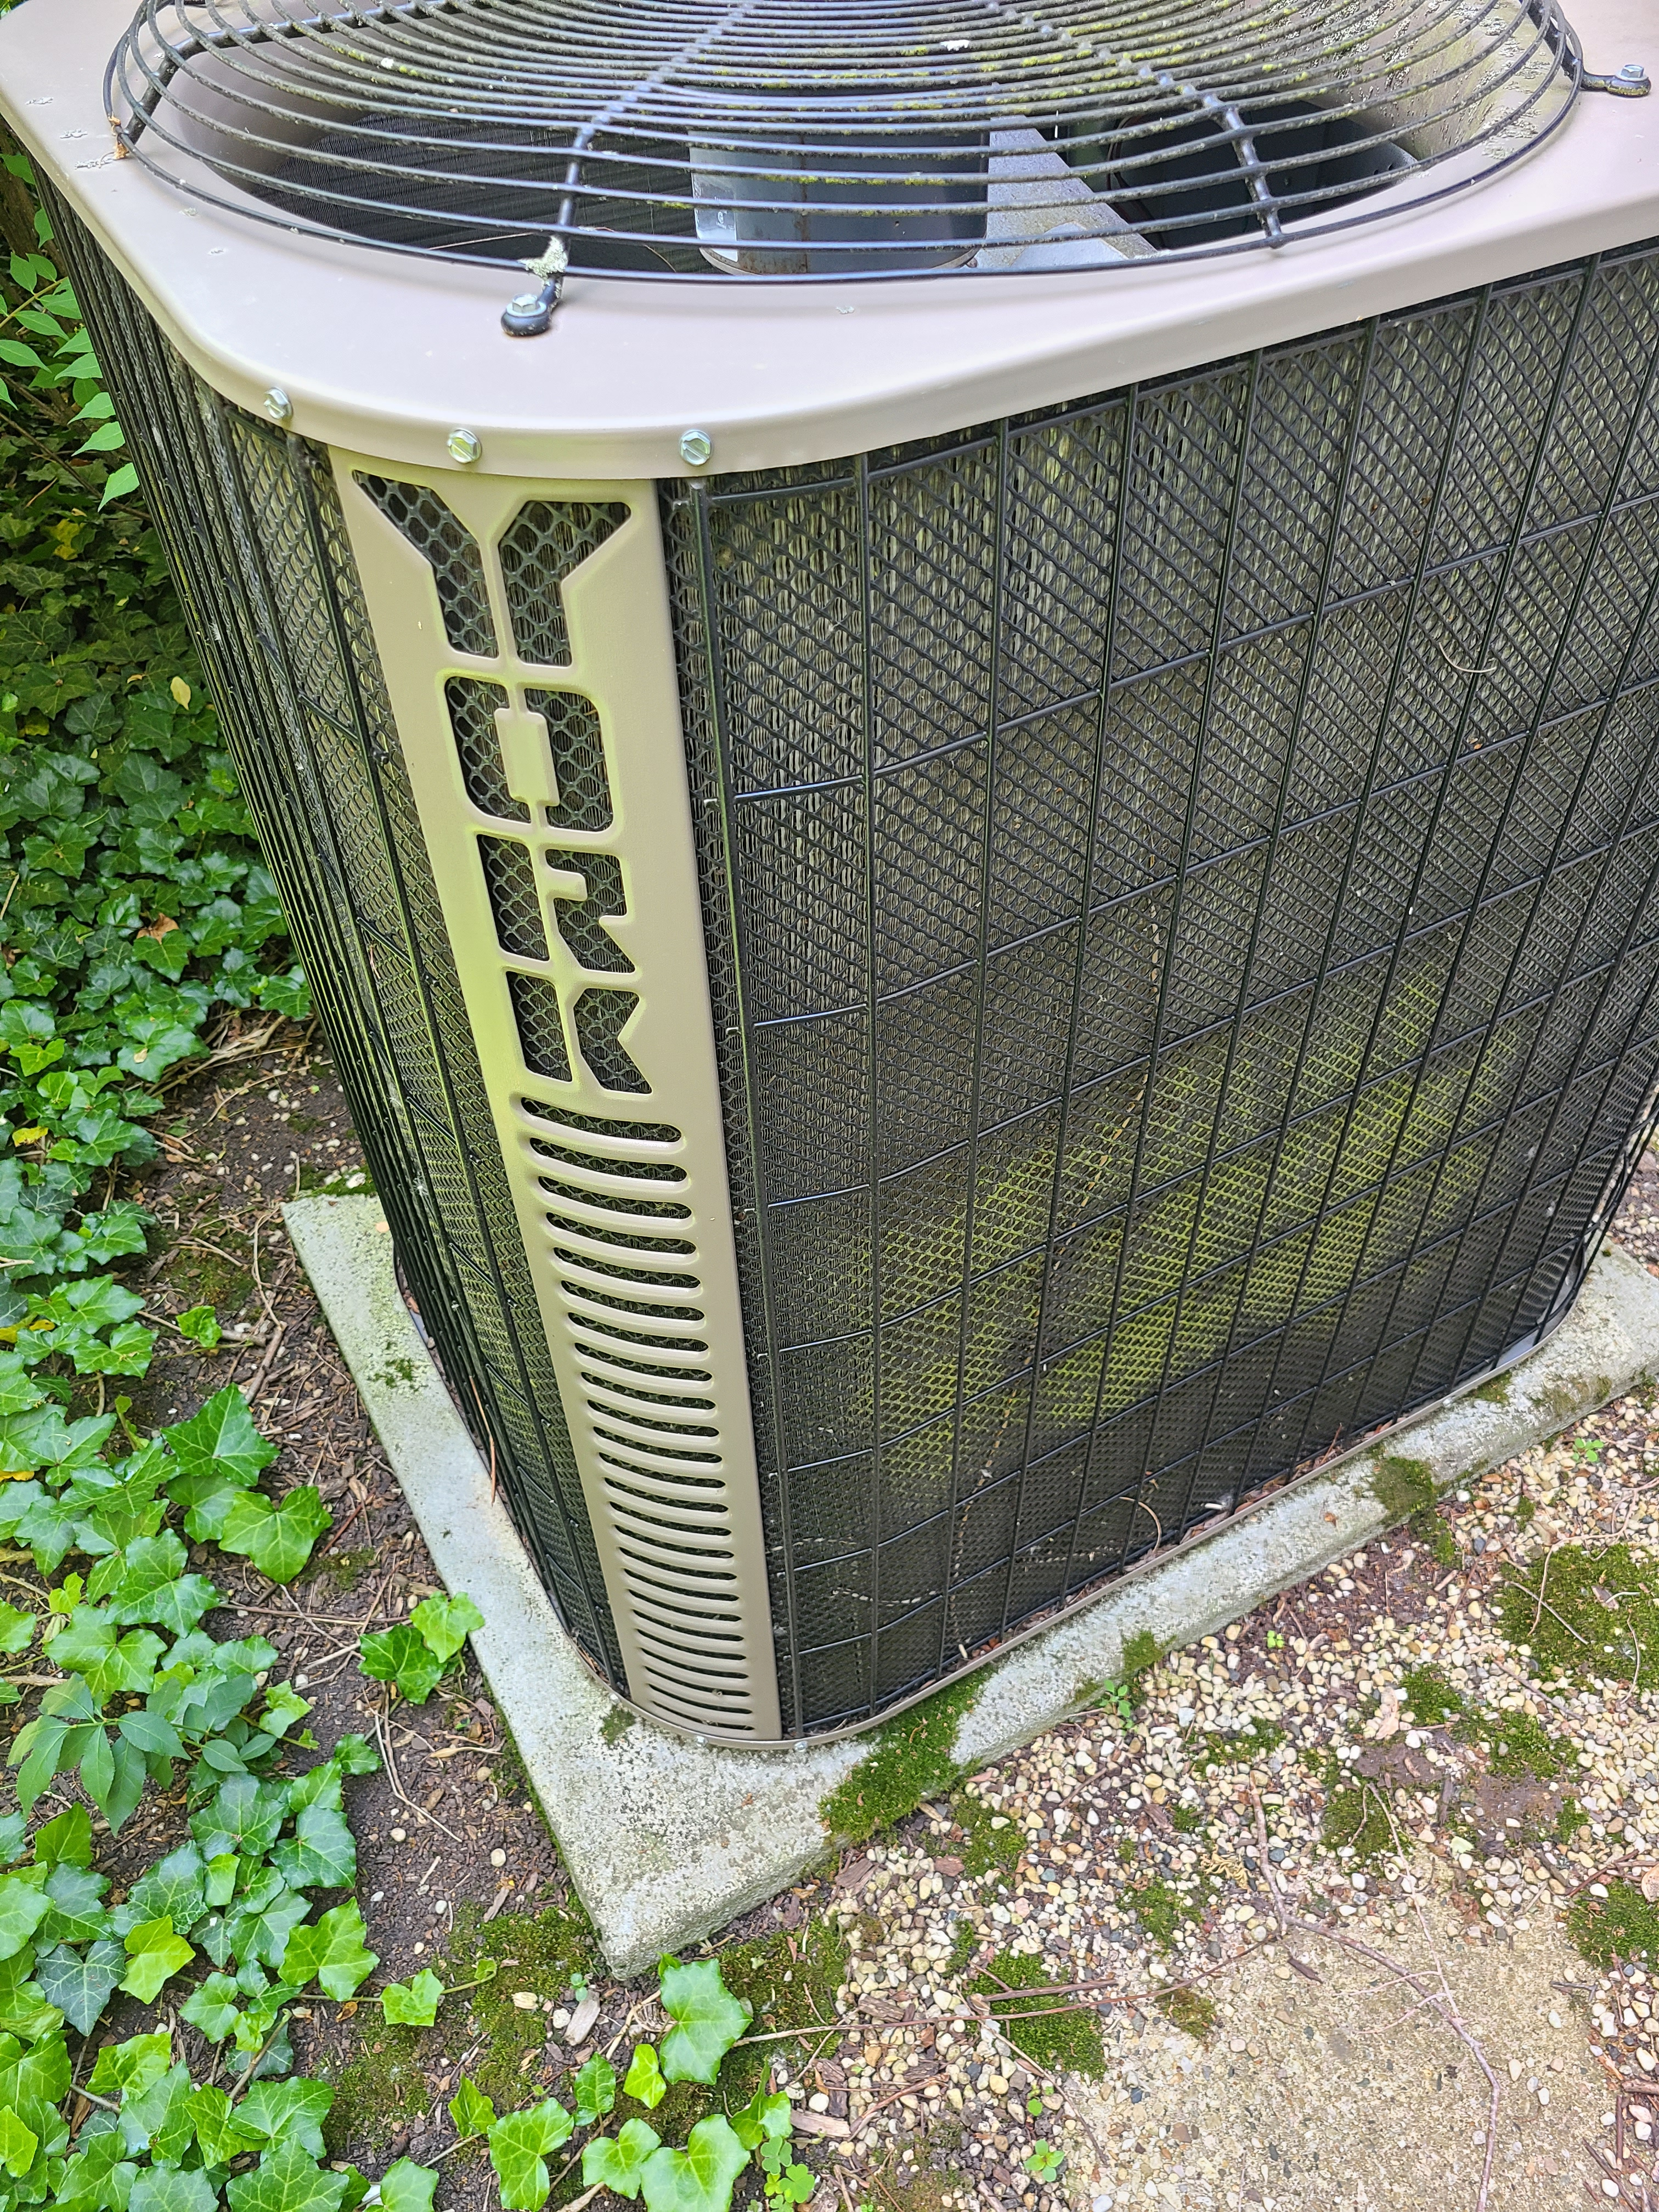 York air conditioning maintenance for Comfort Club.